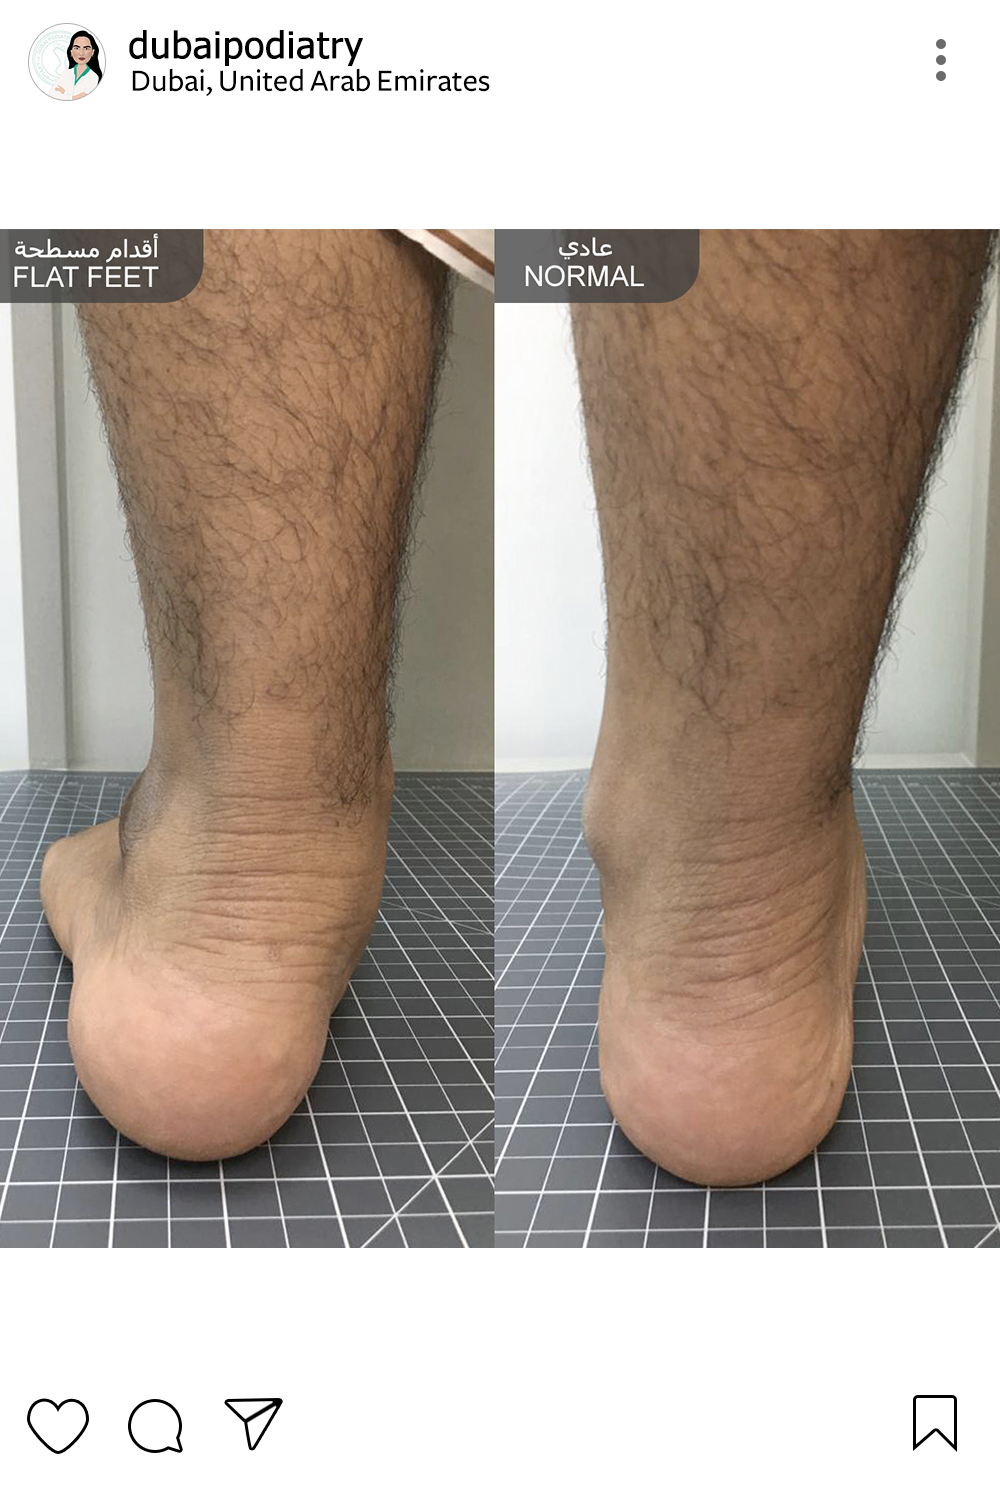 http://dubaipodiatry.com/wp-content/uploads/2019/01/Dubai-Podiatry-Instagram-5.jpg